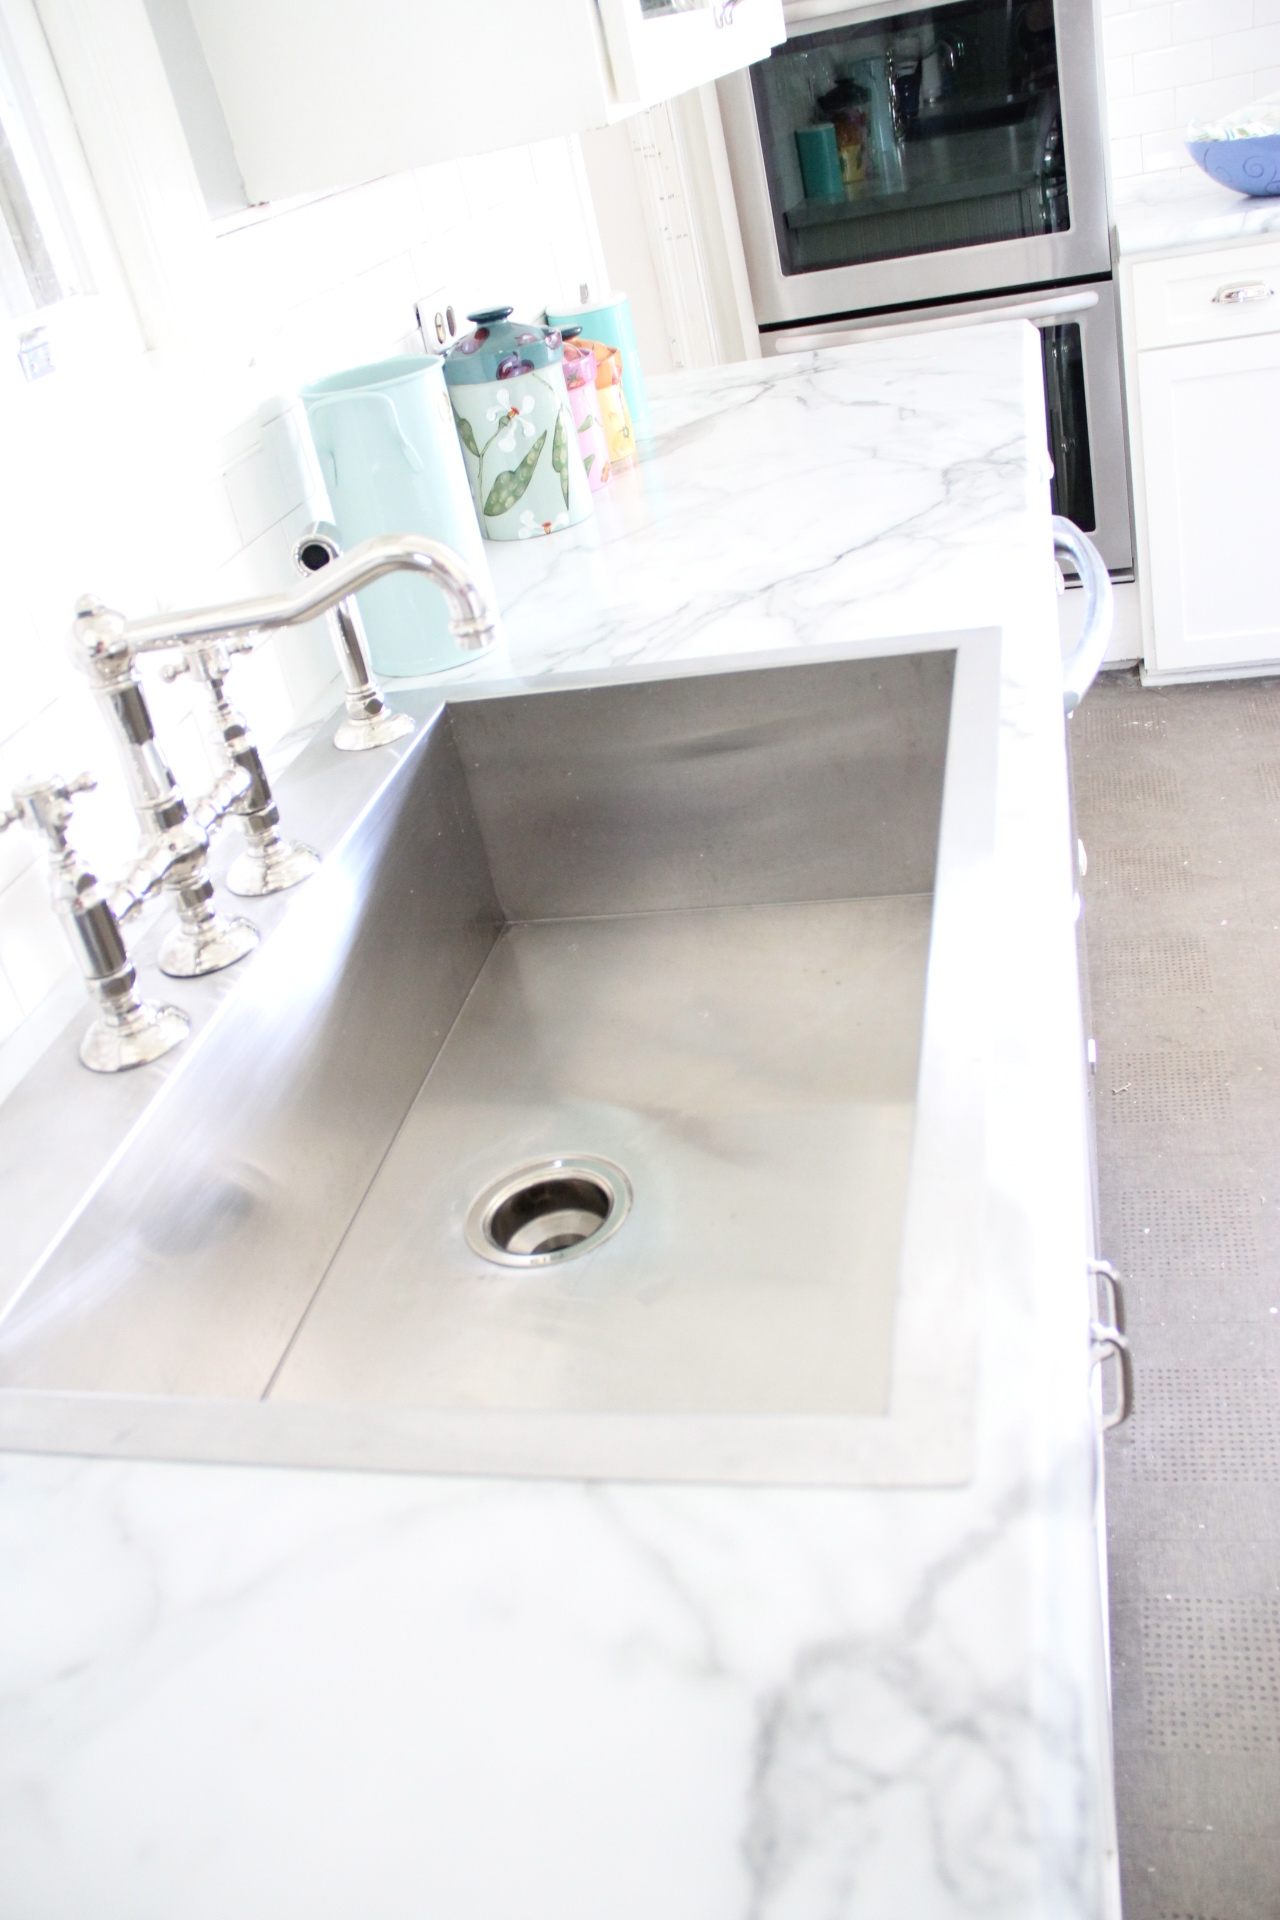 CHOOSING FORMICA MARBLE OVER REAL MARBLE –